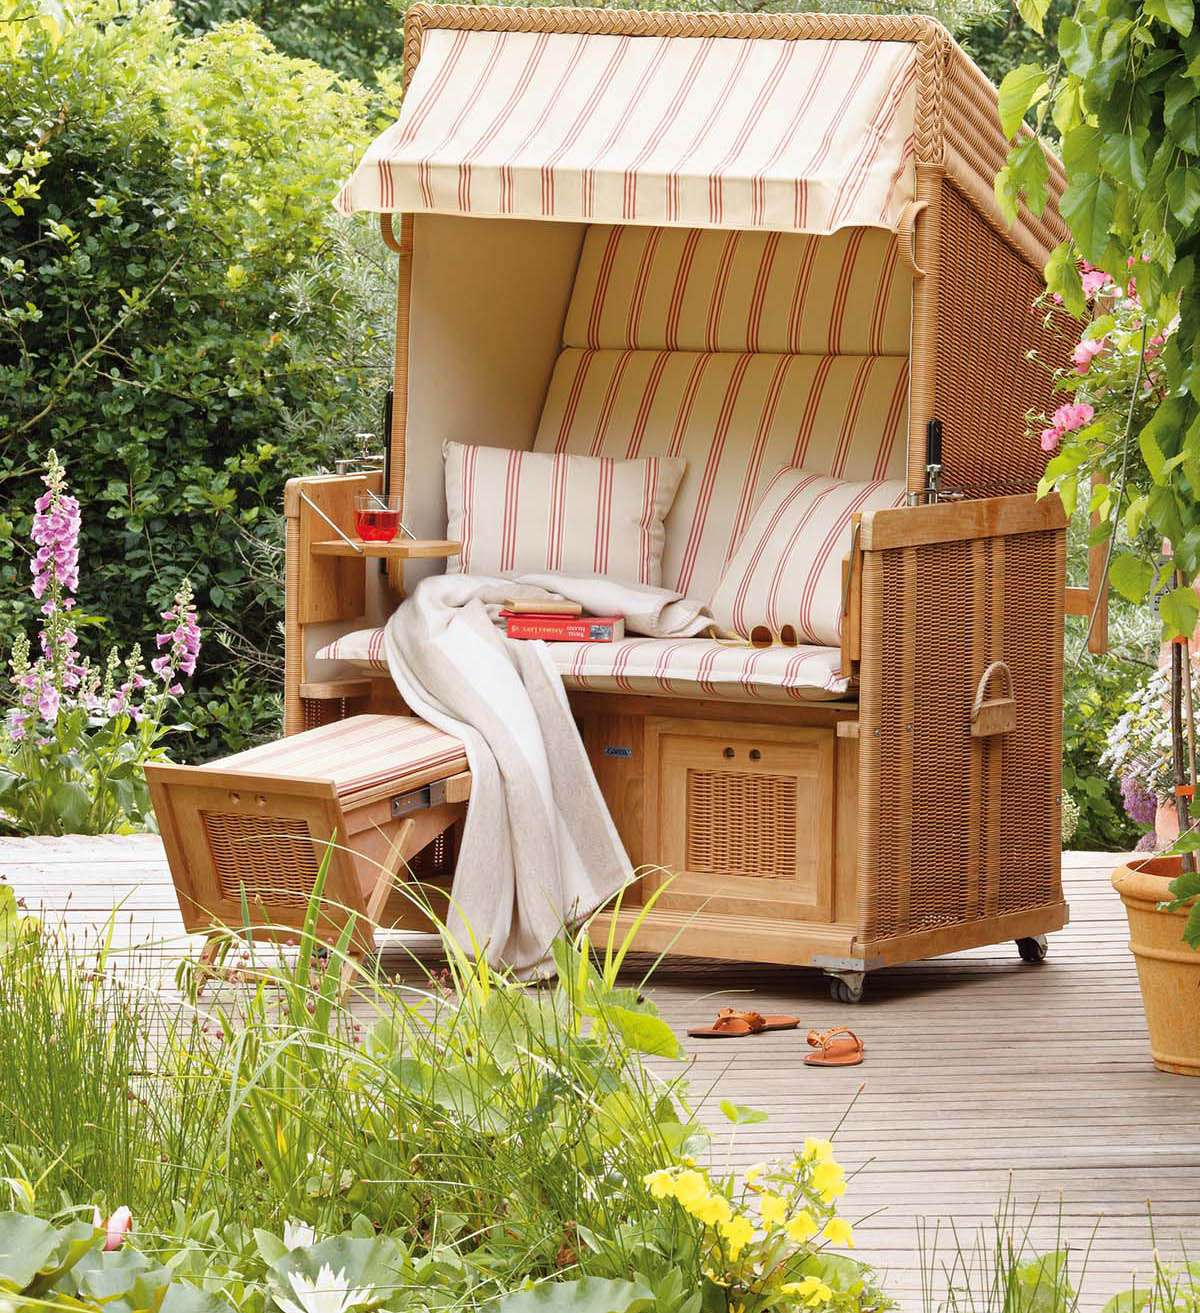 einen strandkorb f r den garten kaufen wohnideen magazin. Black Bedroom Furniture Sets. Home Design Ideas